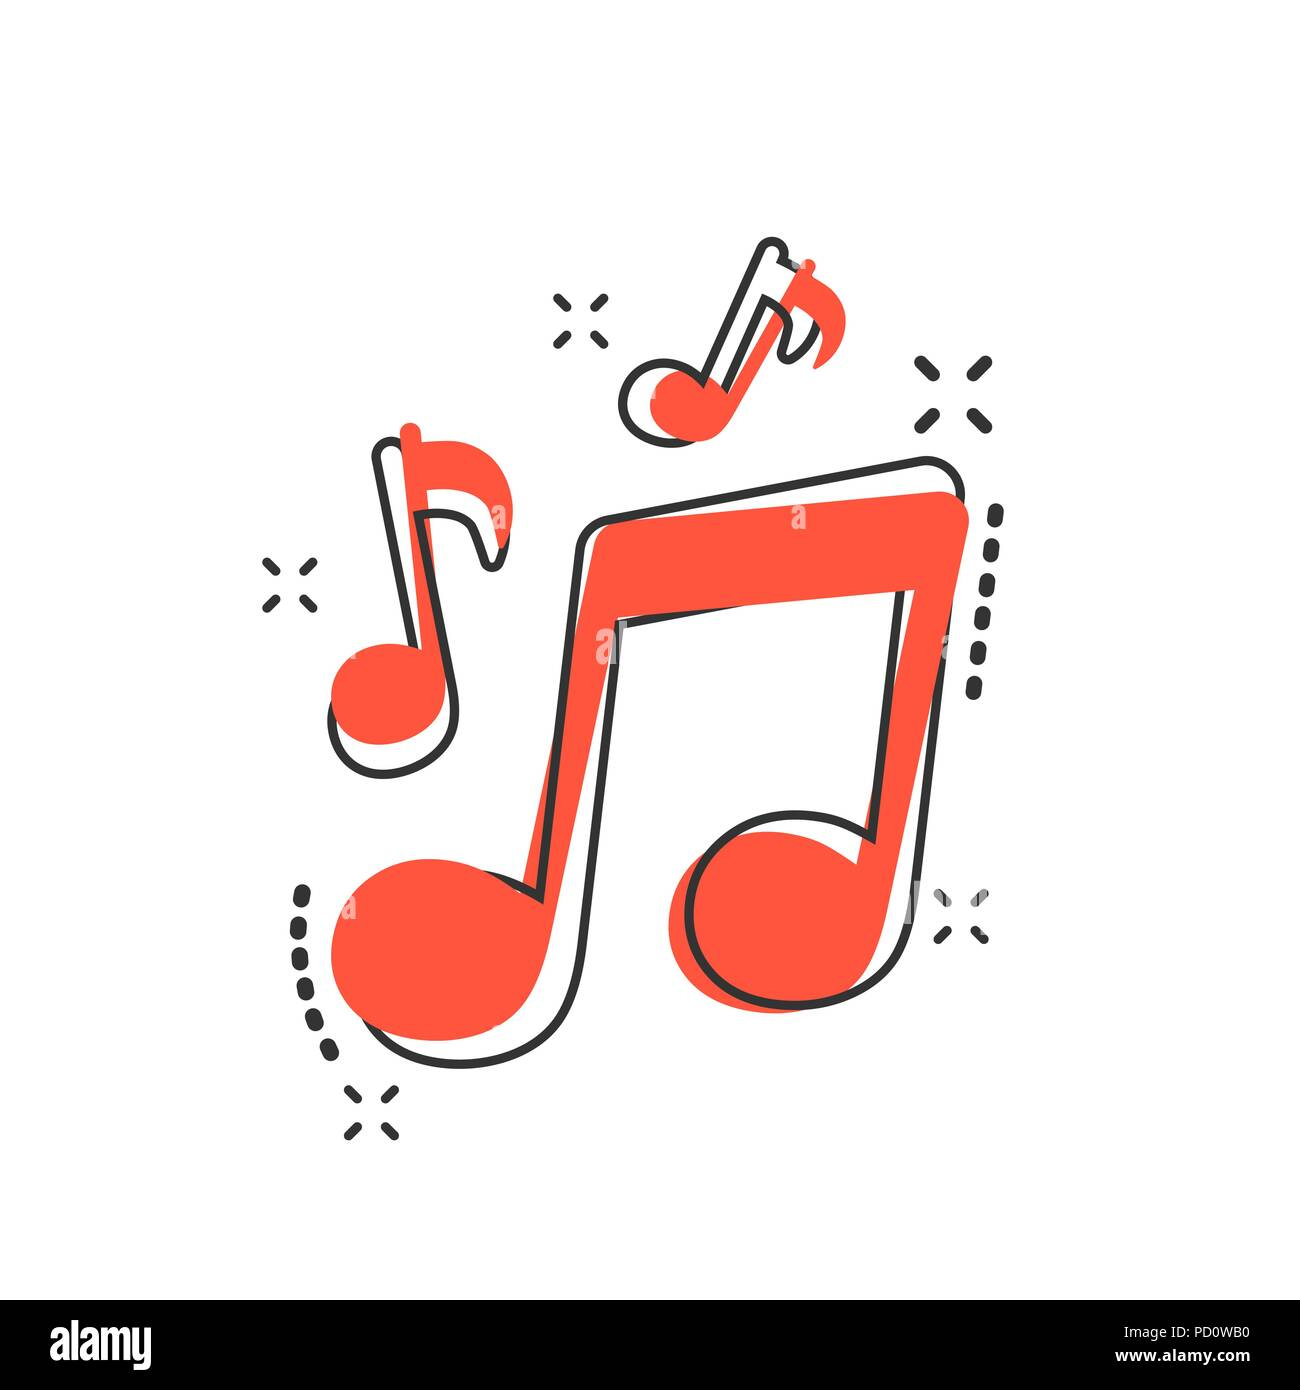 Vector Cartoon Music Icon In Comic Style Sound Note Sign Illustration Pictogram Melody Music Business Splash Effect Concept Stock Vector Image Art Alamy